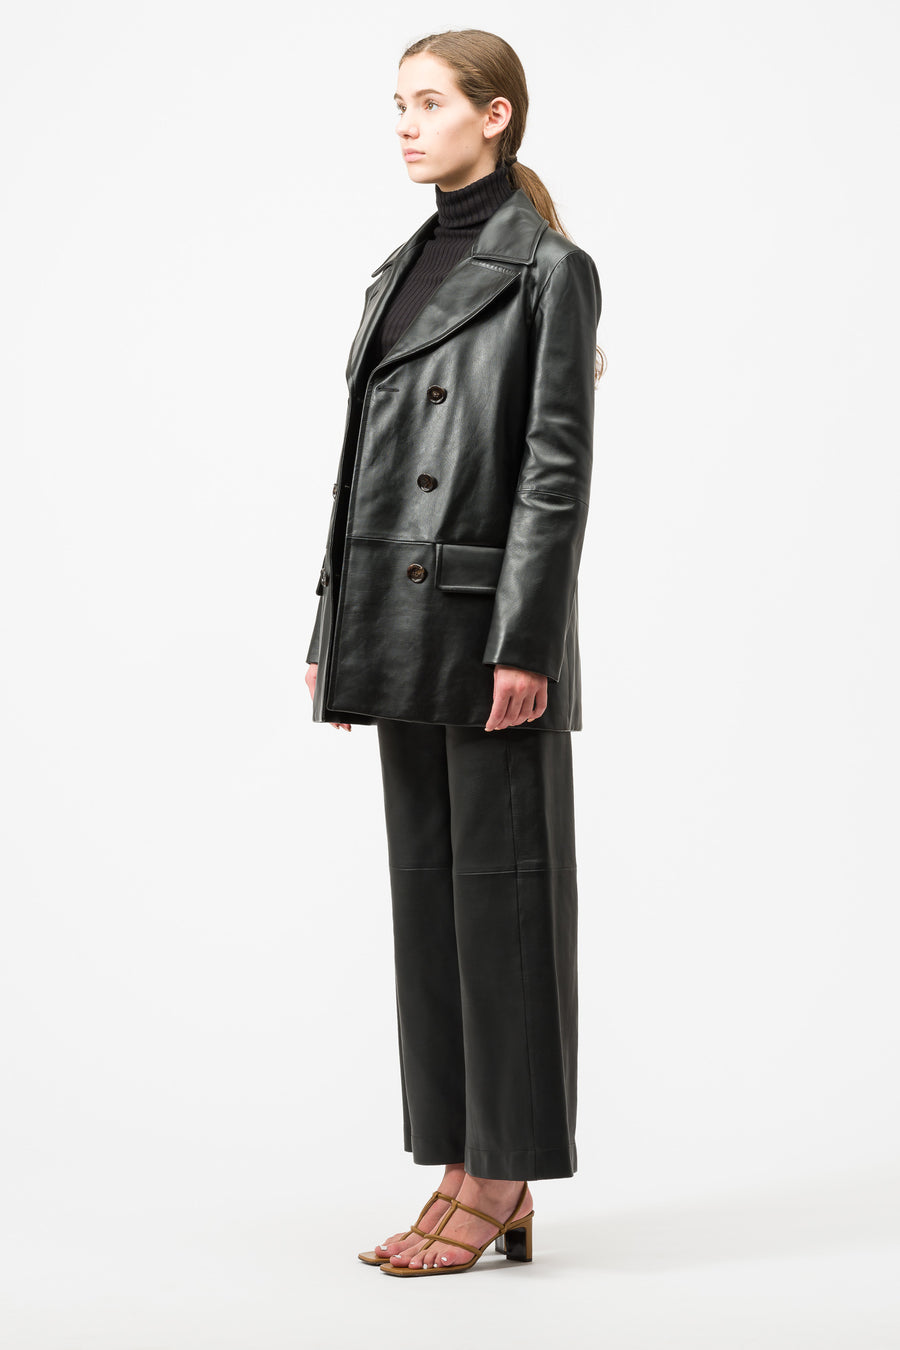 Marni Leather Coat in Black - Notre